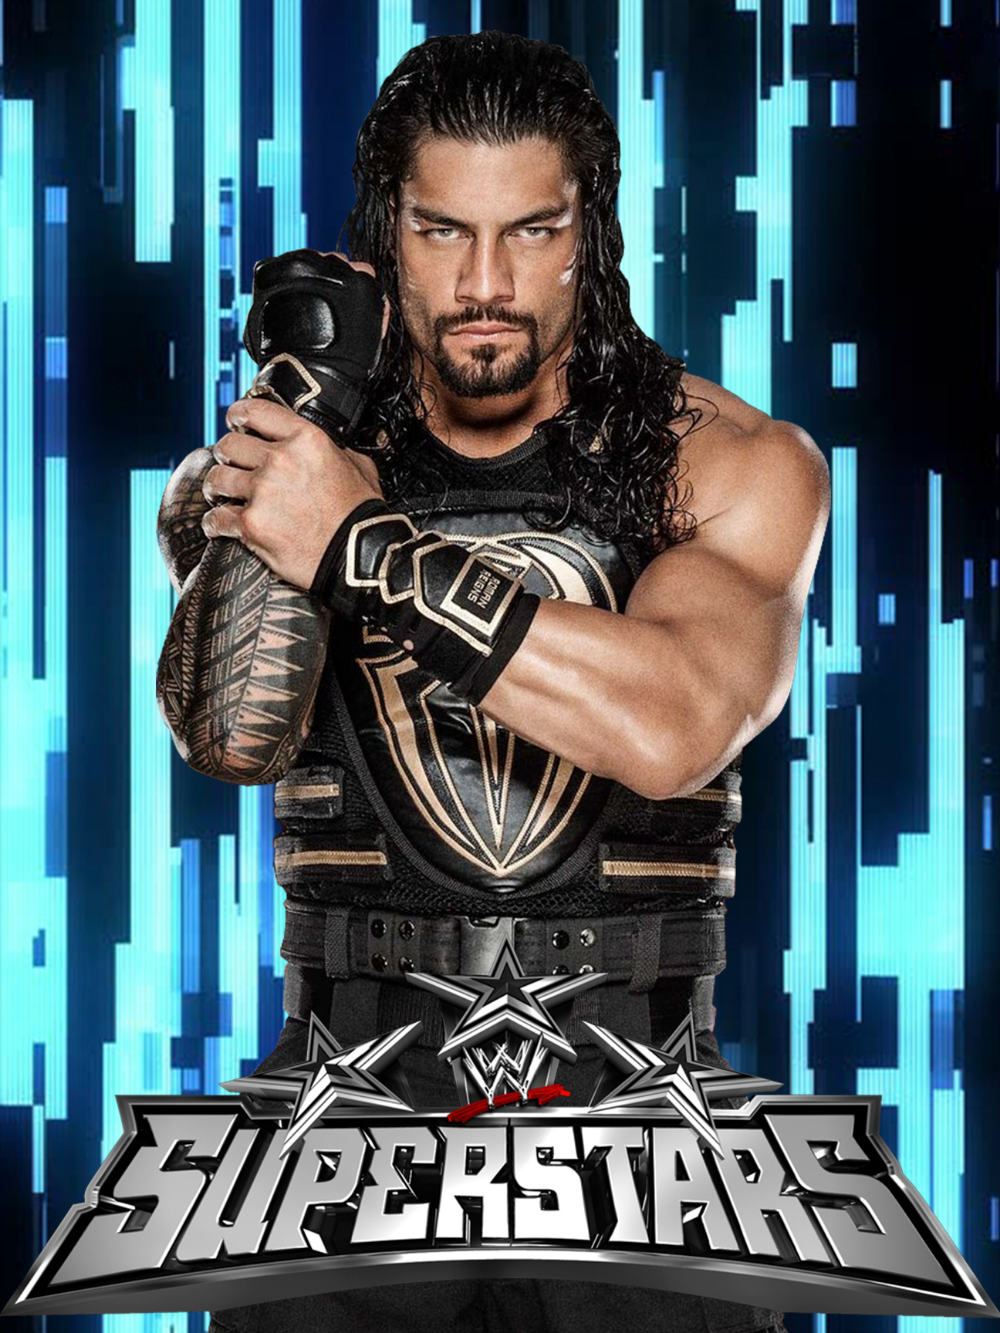 WWE SUPERSTAR ROMAN REIGNS POSTER - CULTURE POSTERS